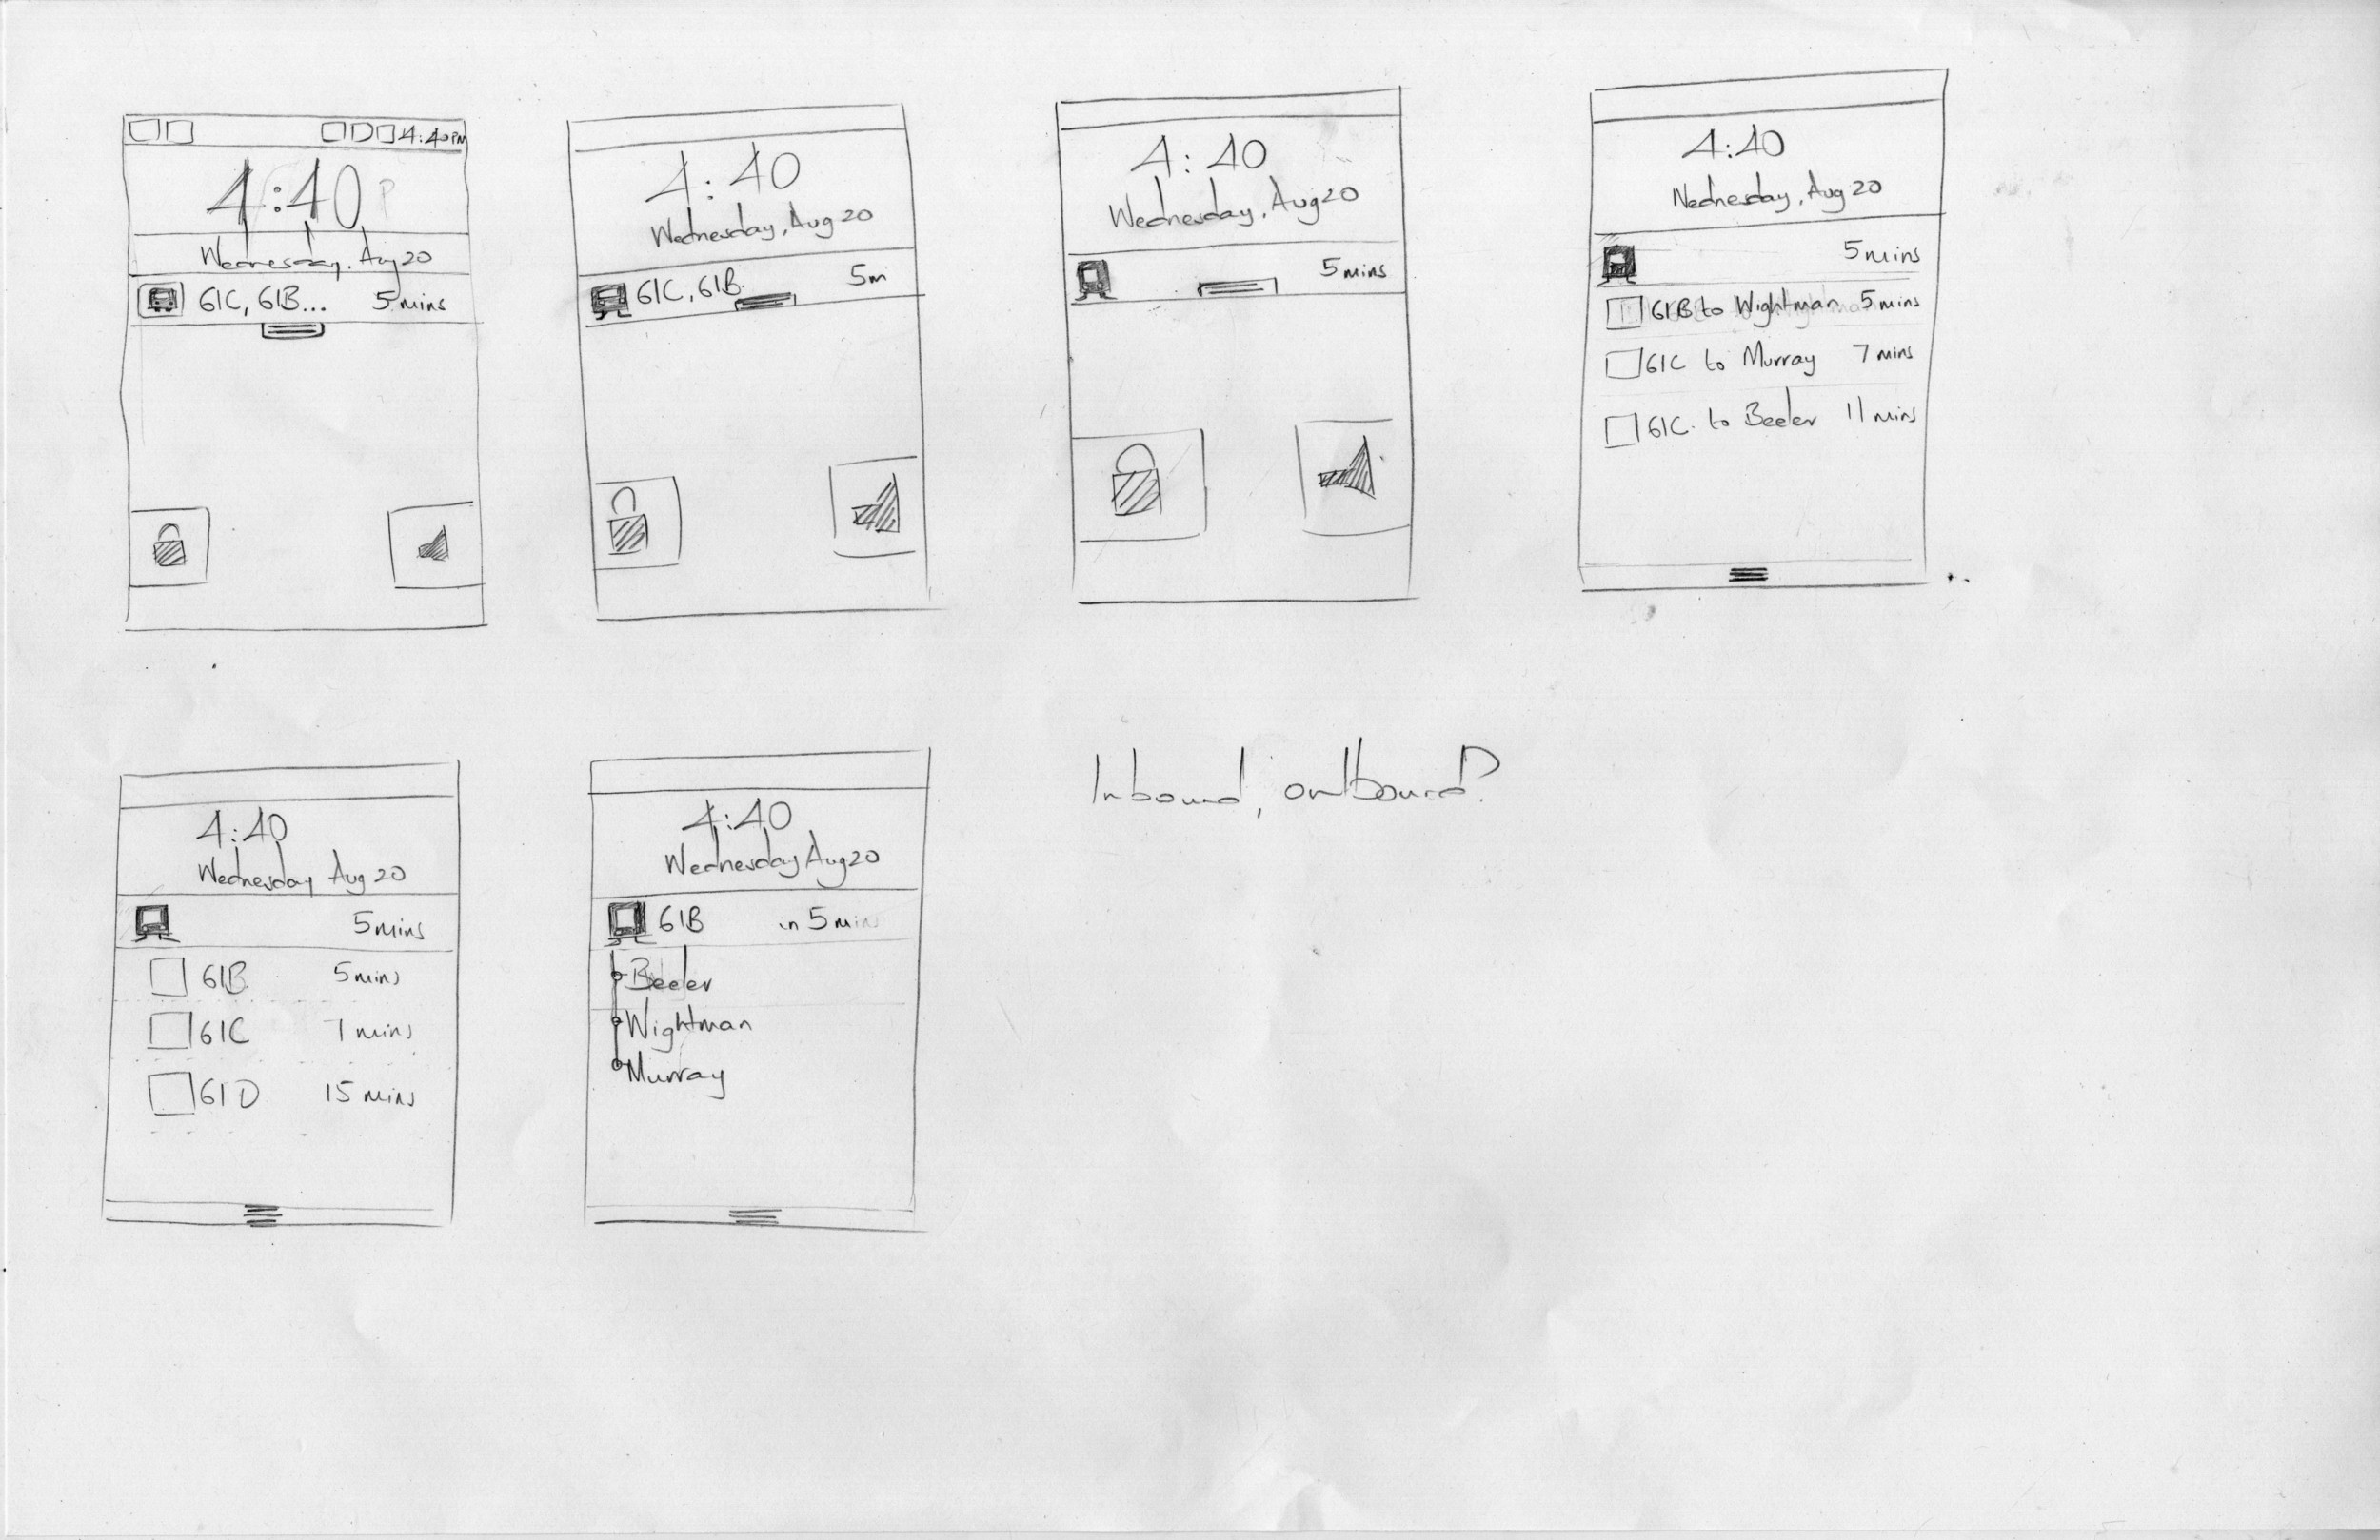 Low-fidelity sketches explore a possible flow for a lock screen concept